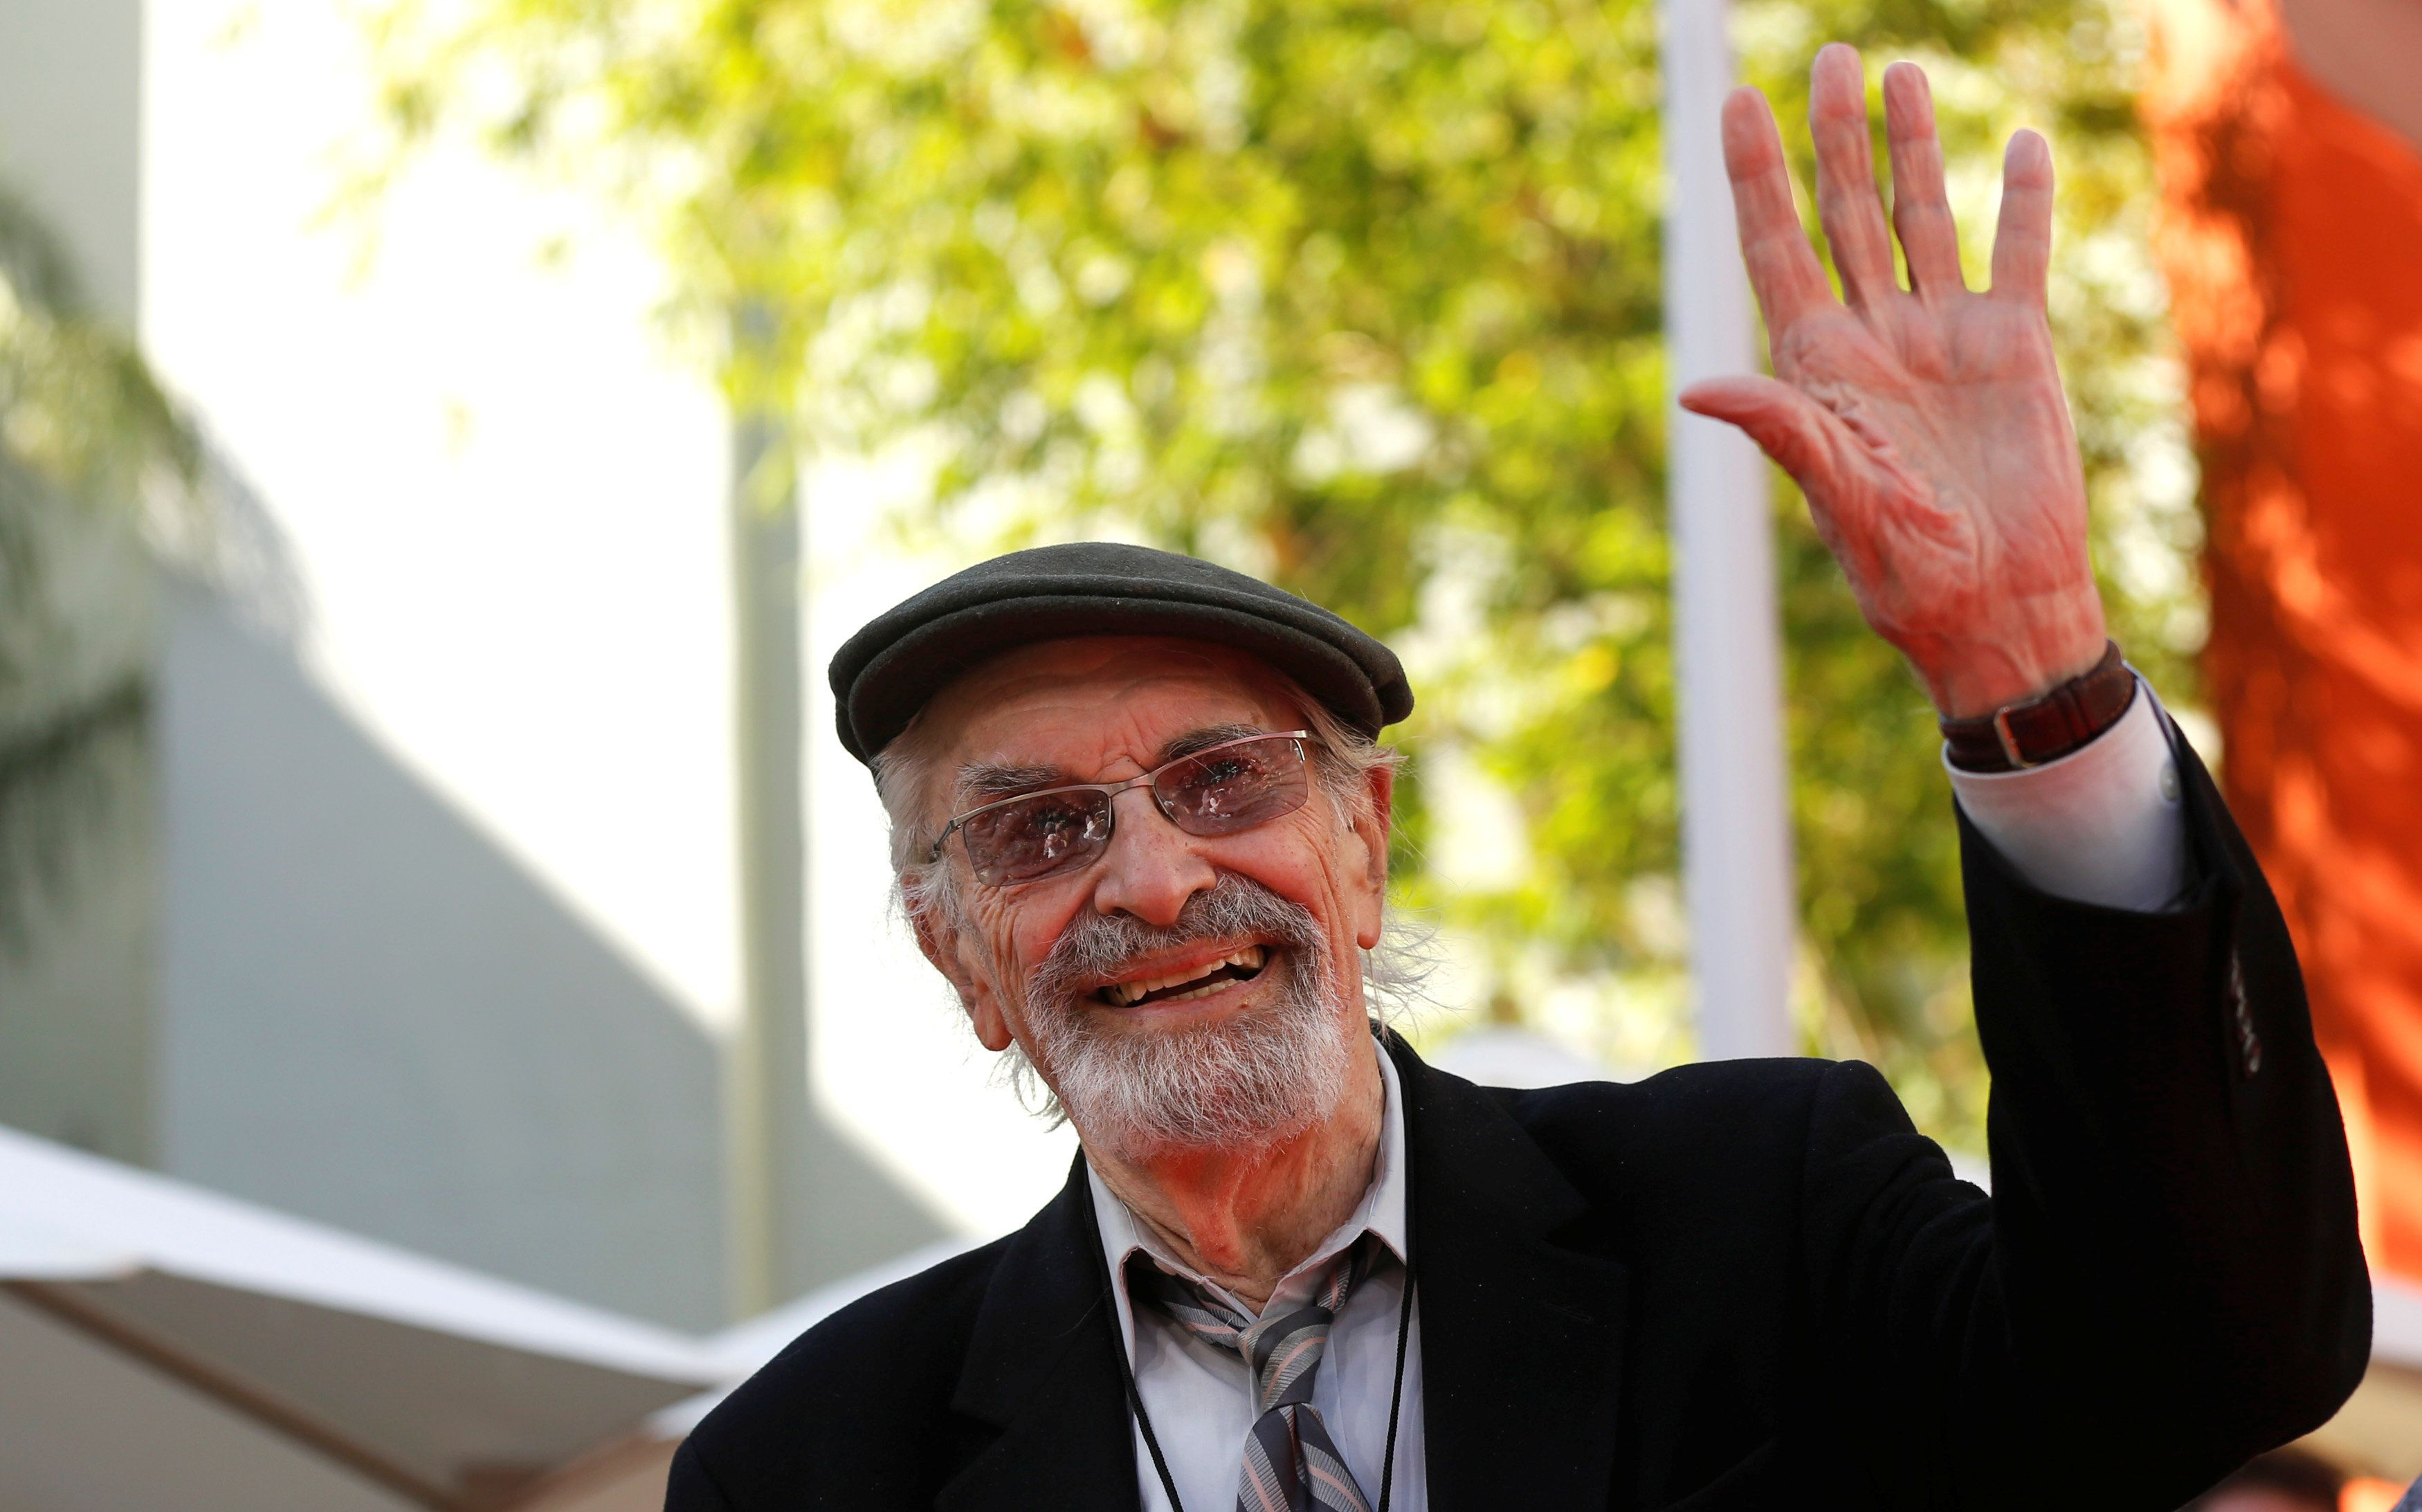 Actor Martin Landau waves at a ceremony for director Tim Burton to place his handprints and footprints in cement in the forecourt of the TCL Chinese theatre in Hollywood, California U.S., September 8, 2016.   REUTERS/Mario Anzuoni